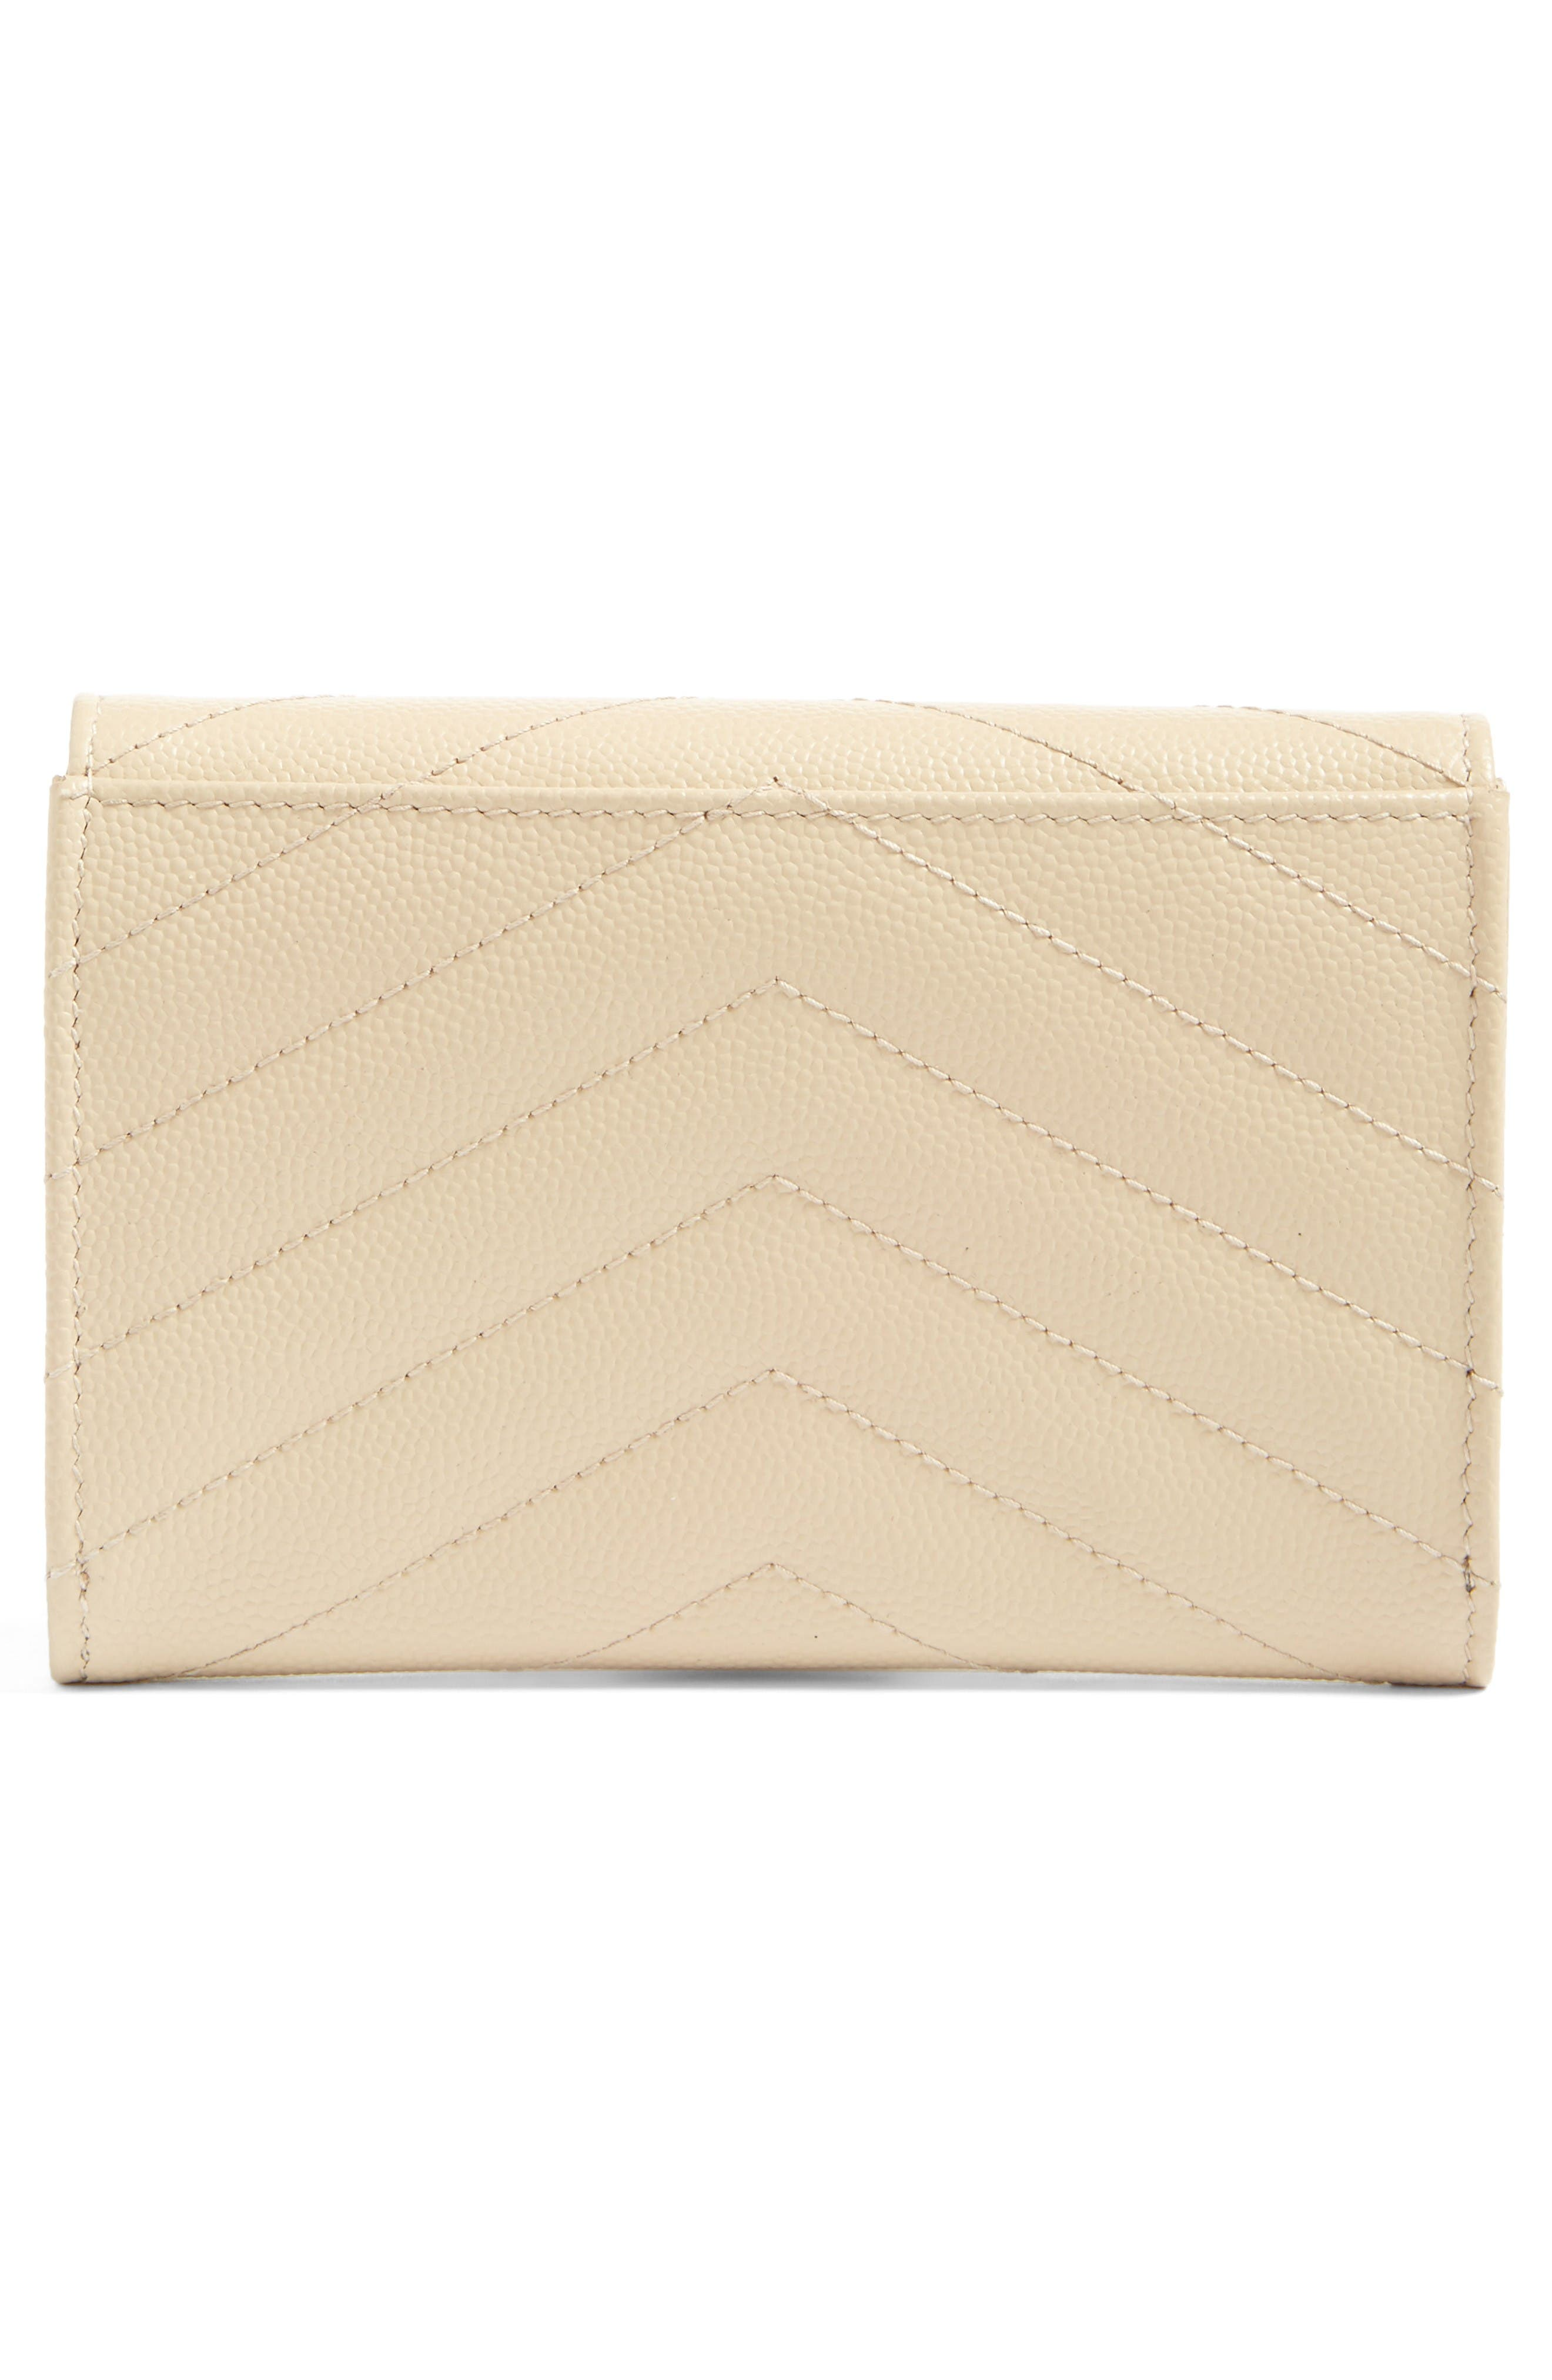 Alternate Image 3  - Saint Laurent 'Monogram' Quilted Leather French Wallet